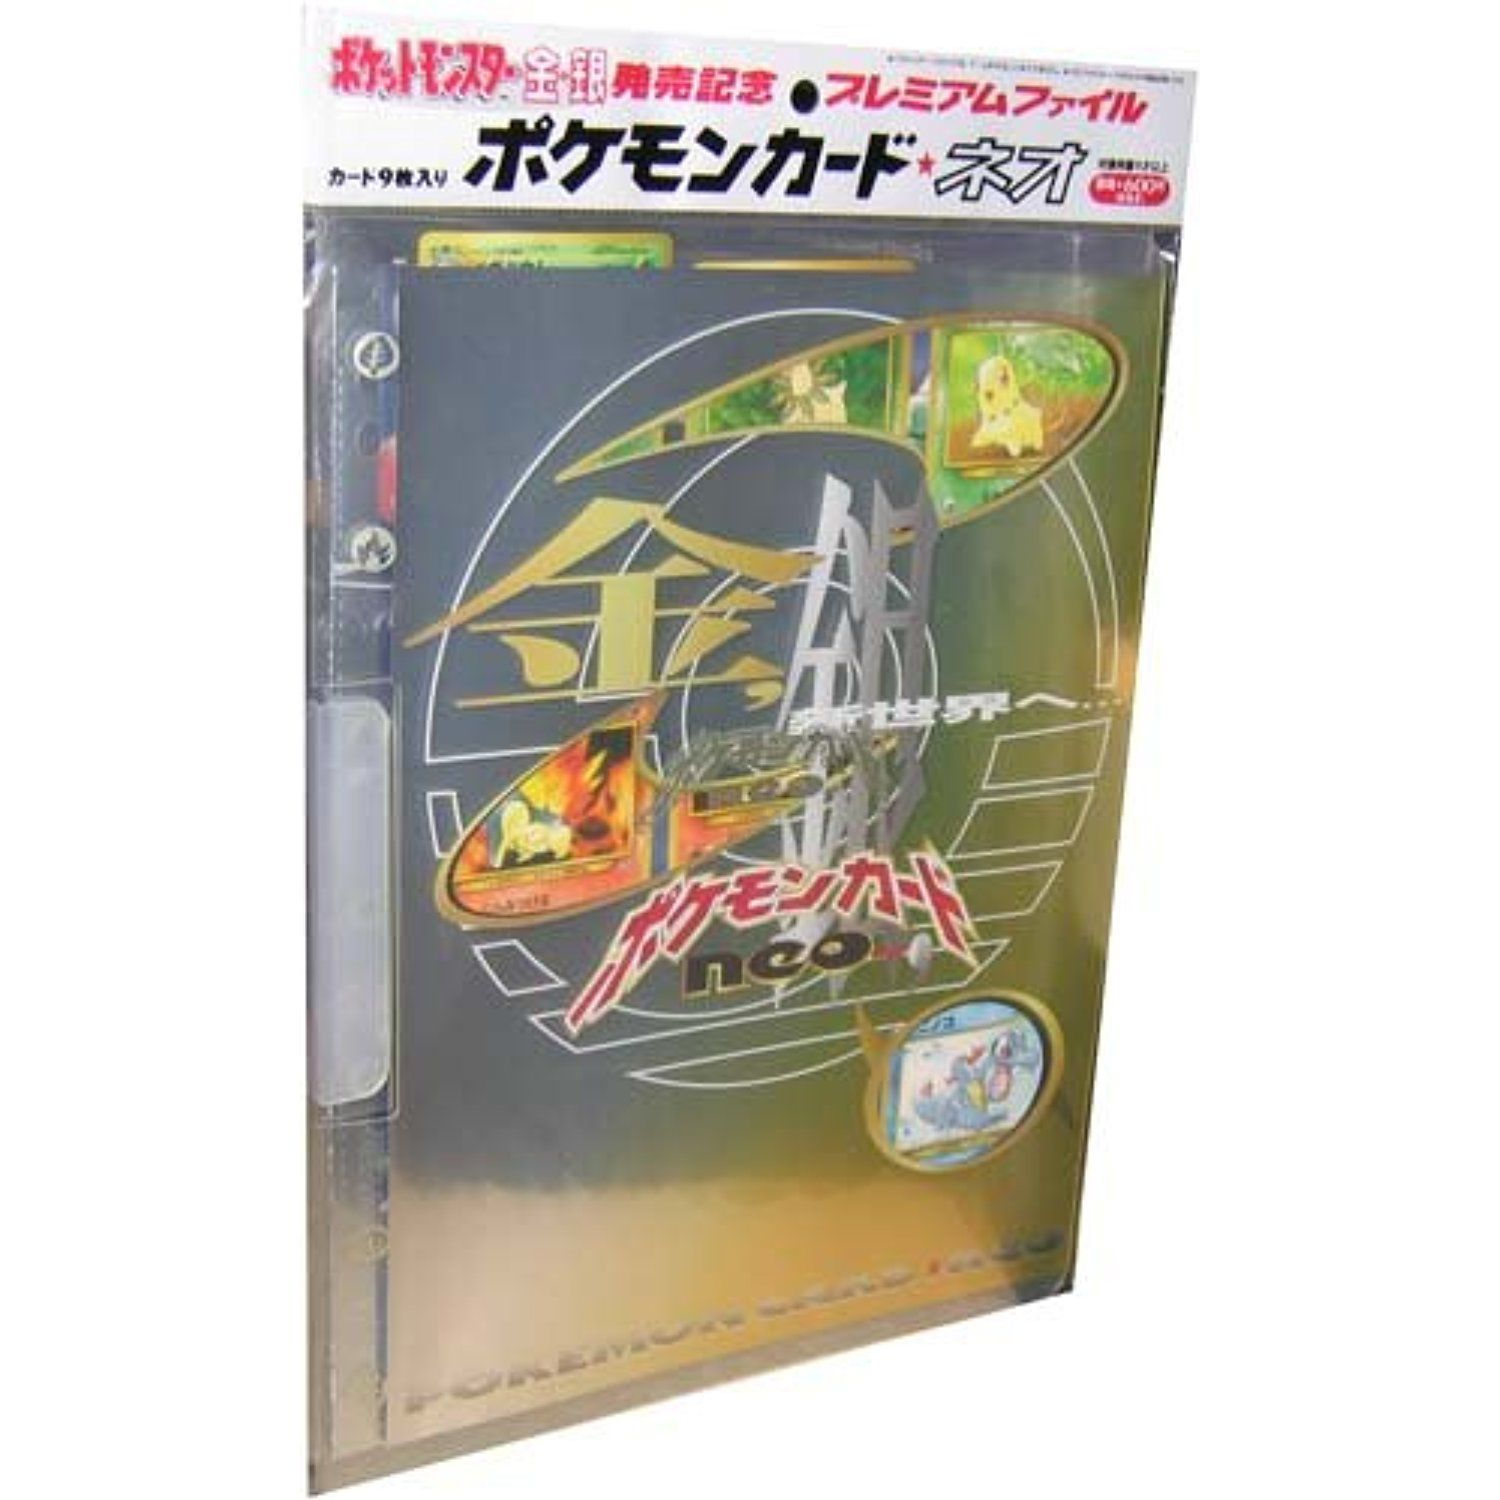 Pokemon: NEO Promo Set (9 Cards) (Japanese Edition) Binder